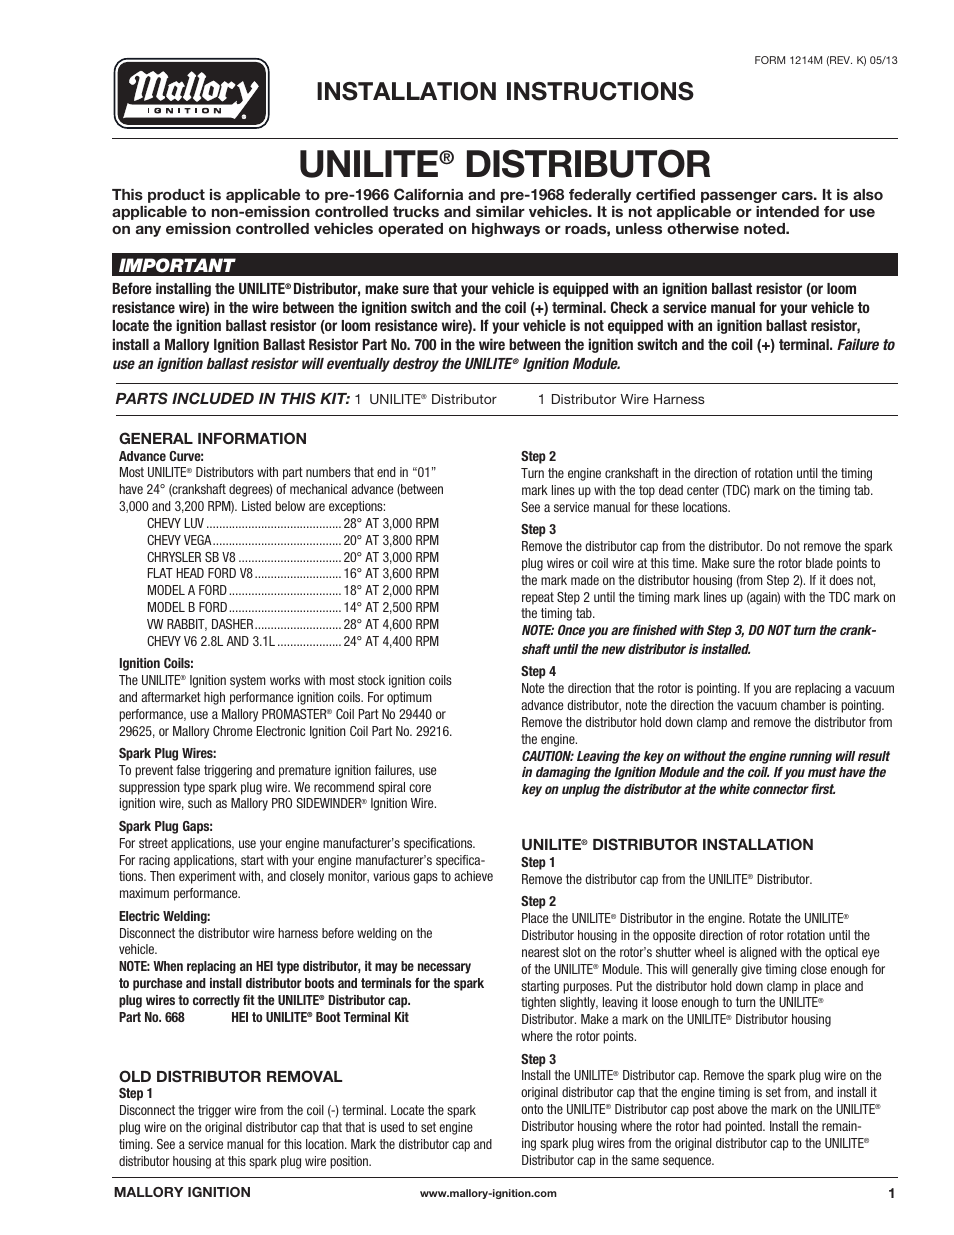 mallory ignition mallory unilite distributor 37_38_45_47 page1 mallory ignition mallory unilite distributor 37_38_45_47 user mallory unilite module wiring diagram at sewacar.co